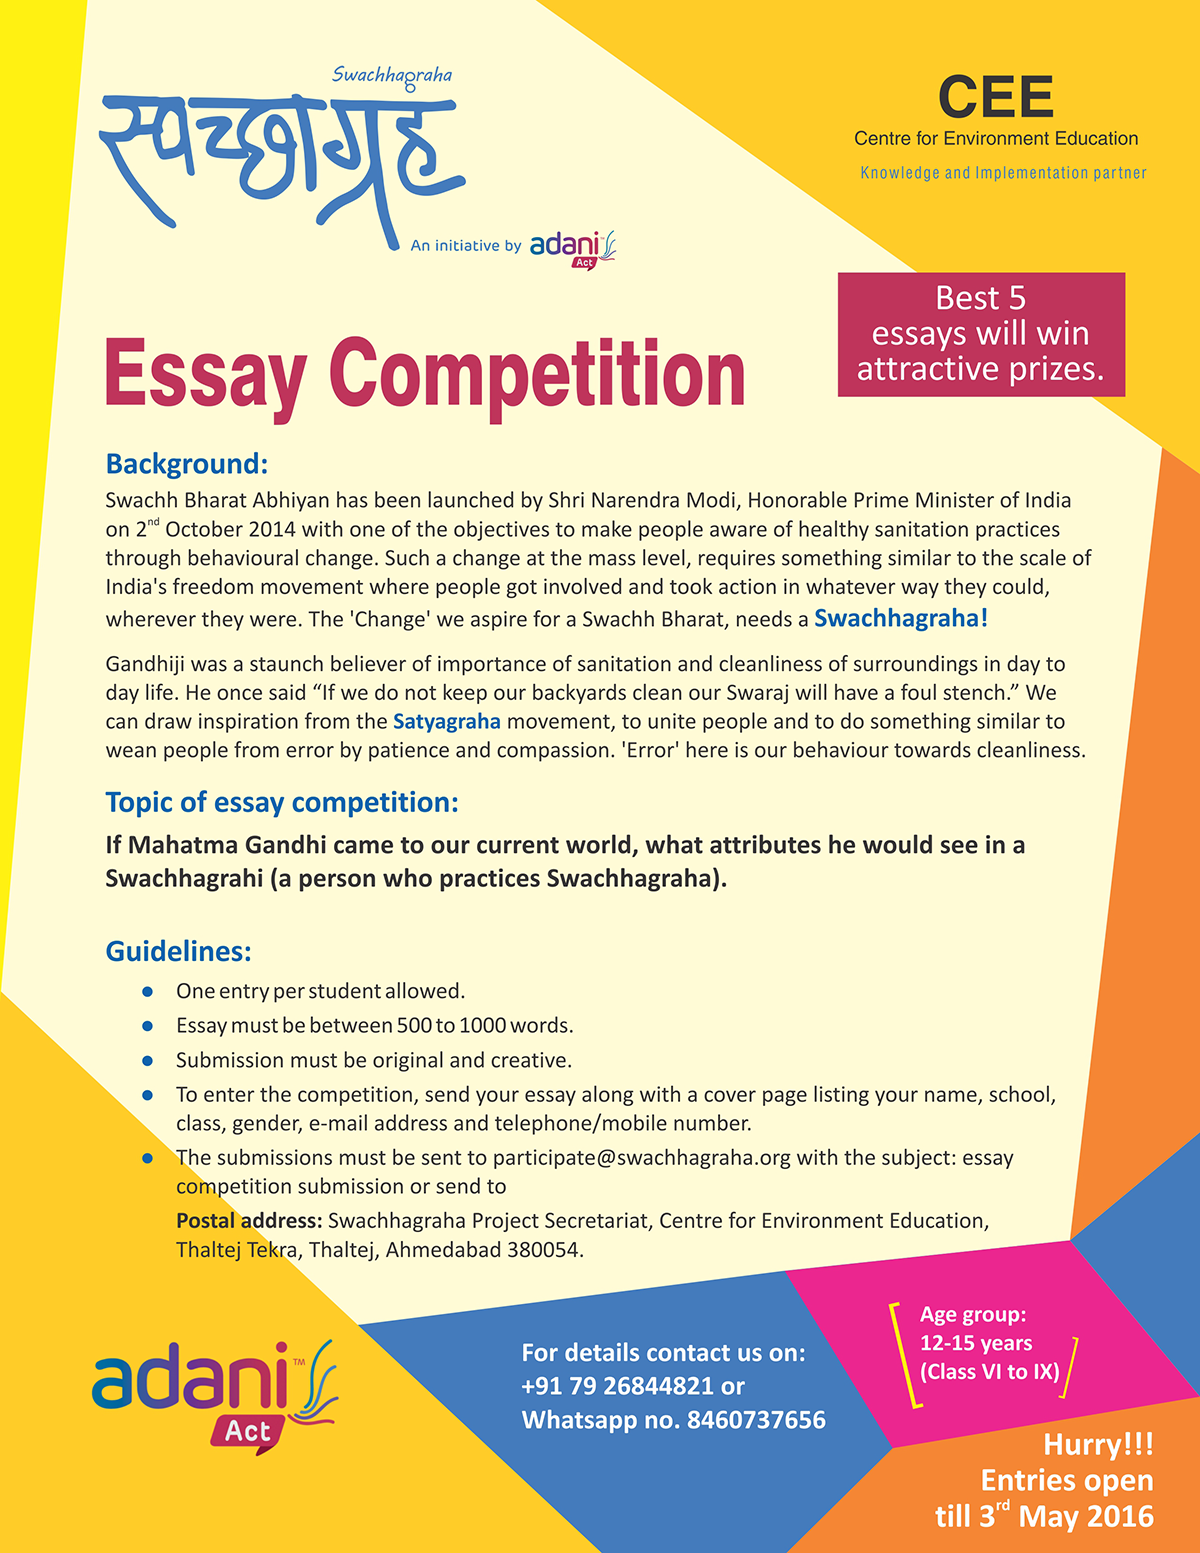 011 20180129171946essay20competition Essay About Cleanliness In School Phenomenal On Toilet And Its Surrounding Writing Hygiene Practices Full